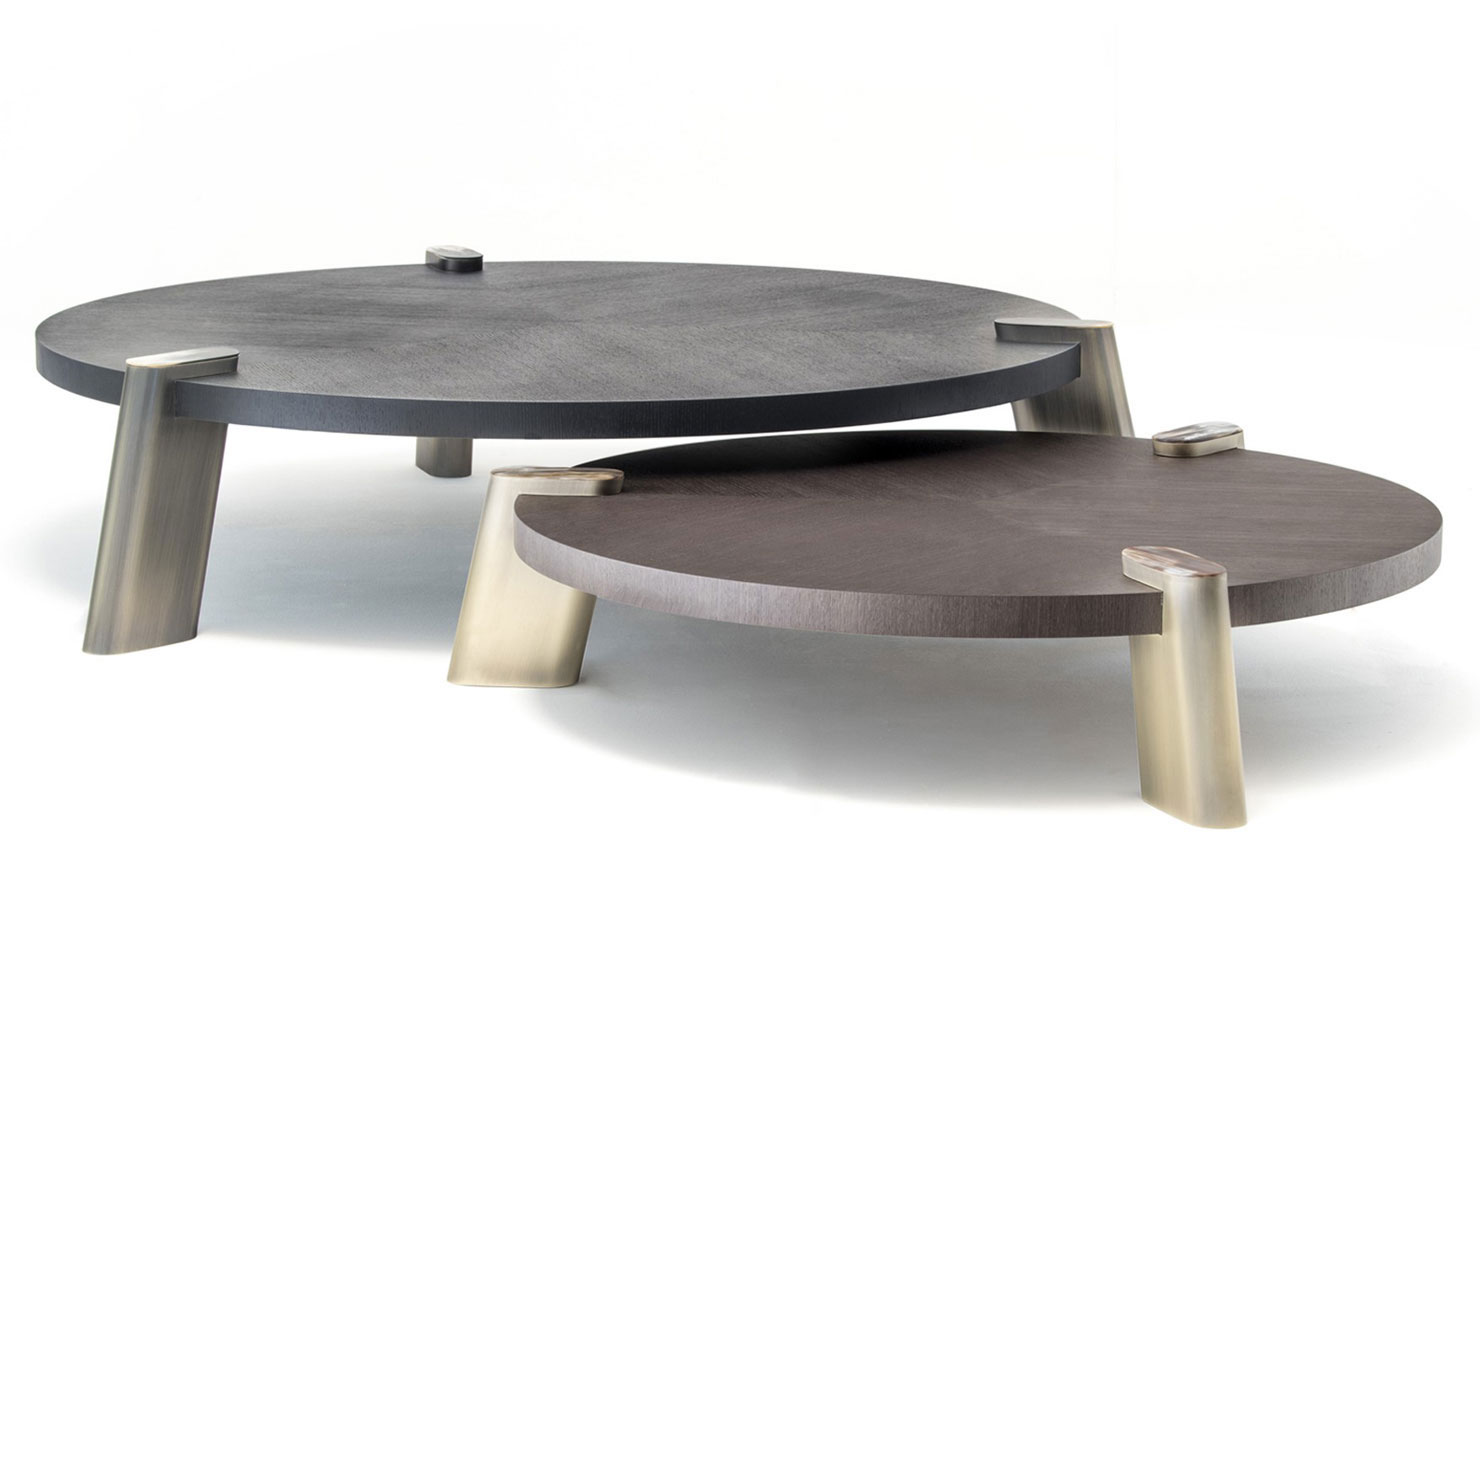 COFFEE TABLE | Mod. 6025 Medium